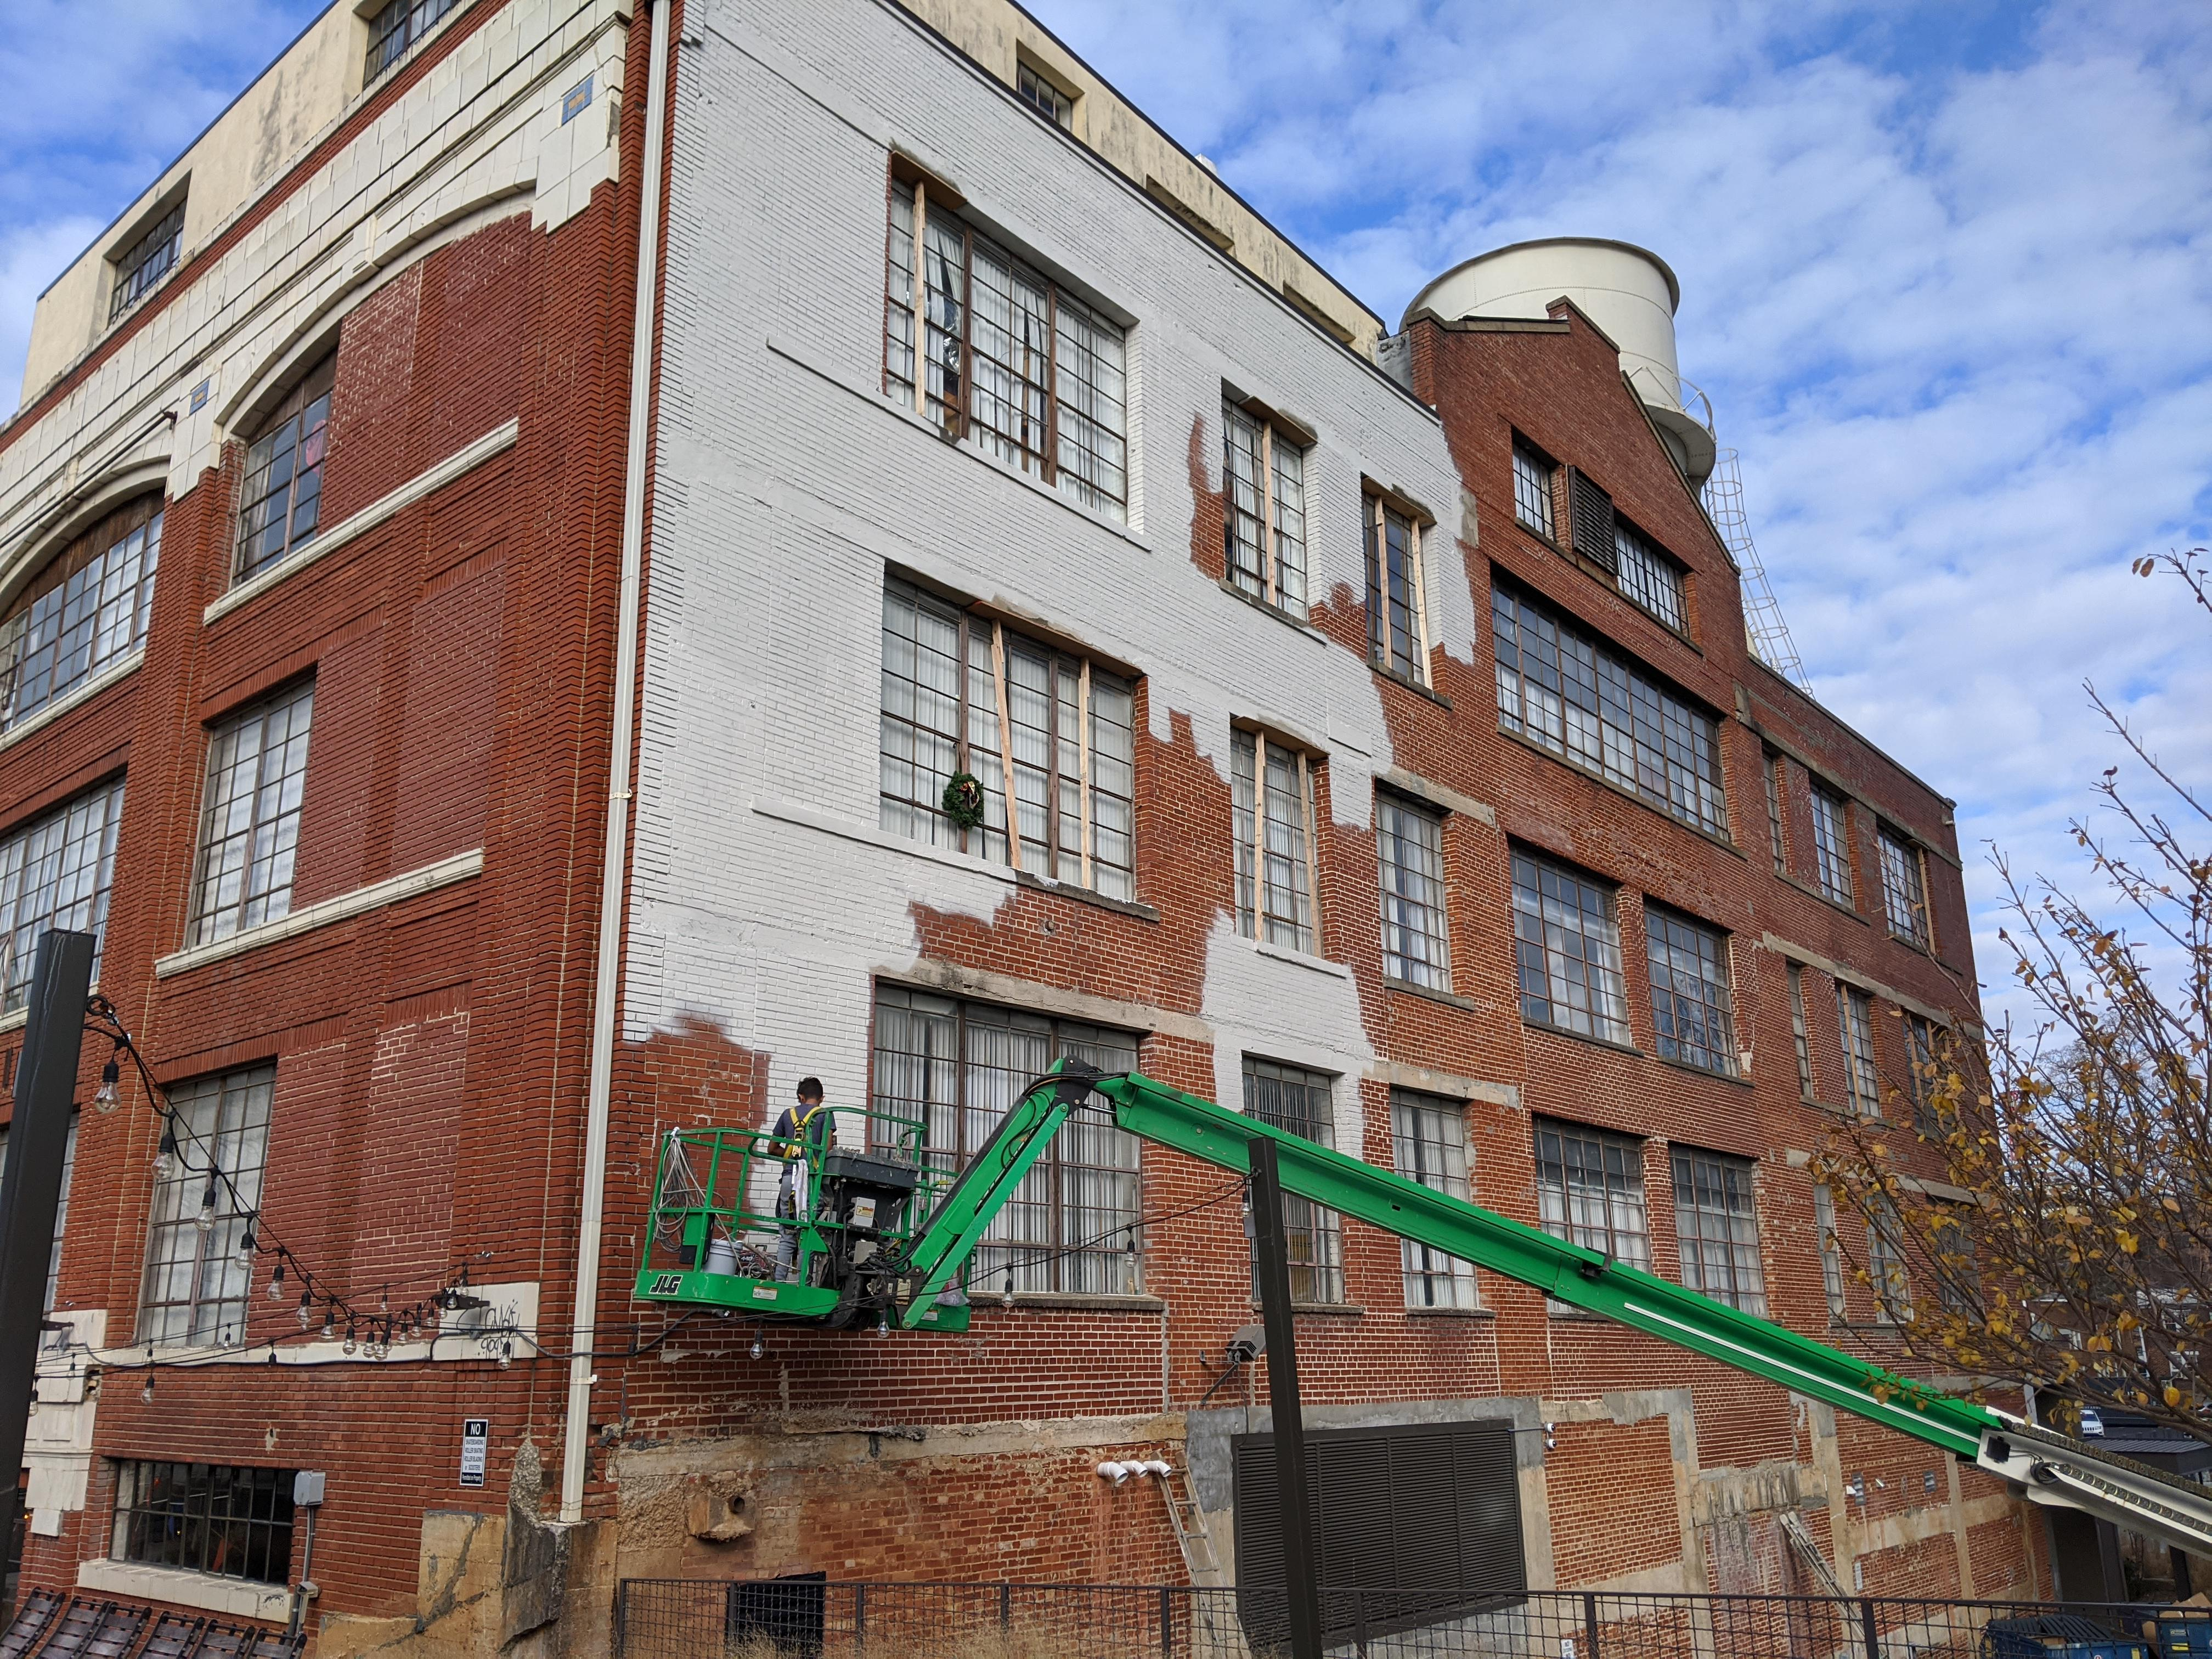 As 725 Ponce offices debut next door, Ford Factory Lofts updates rile preservationists